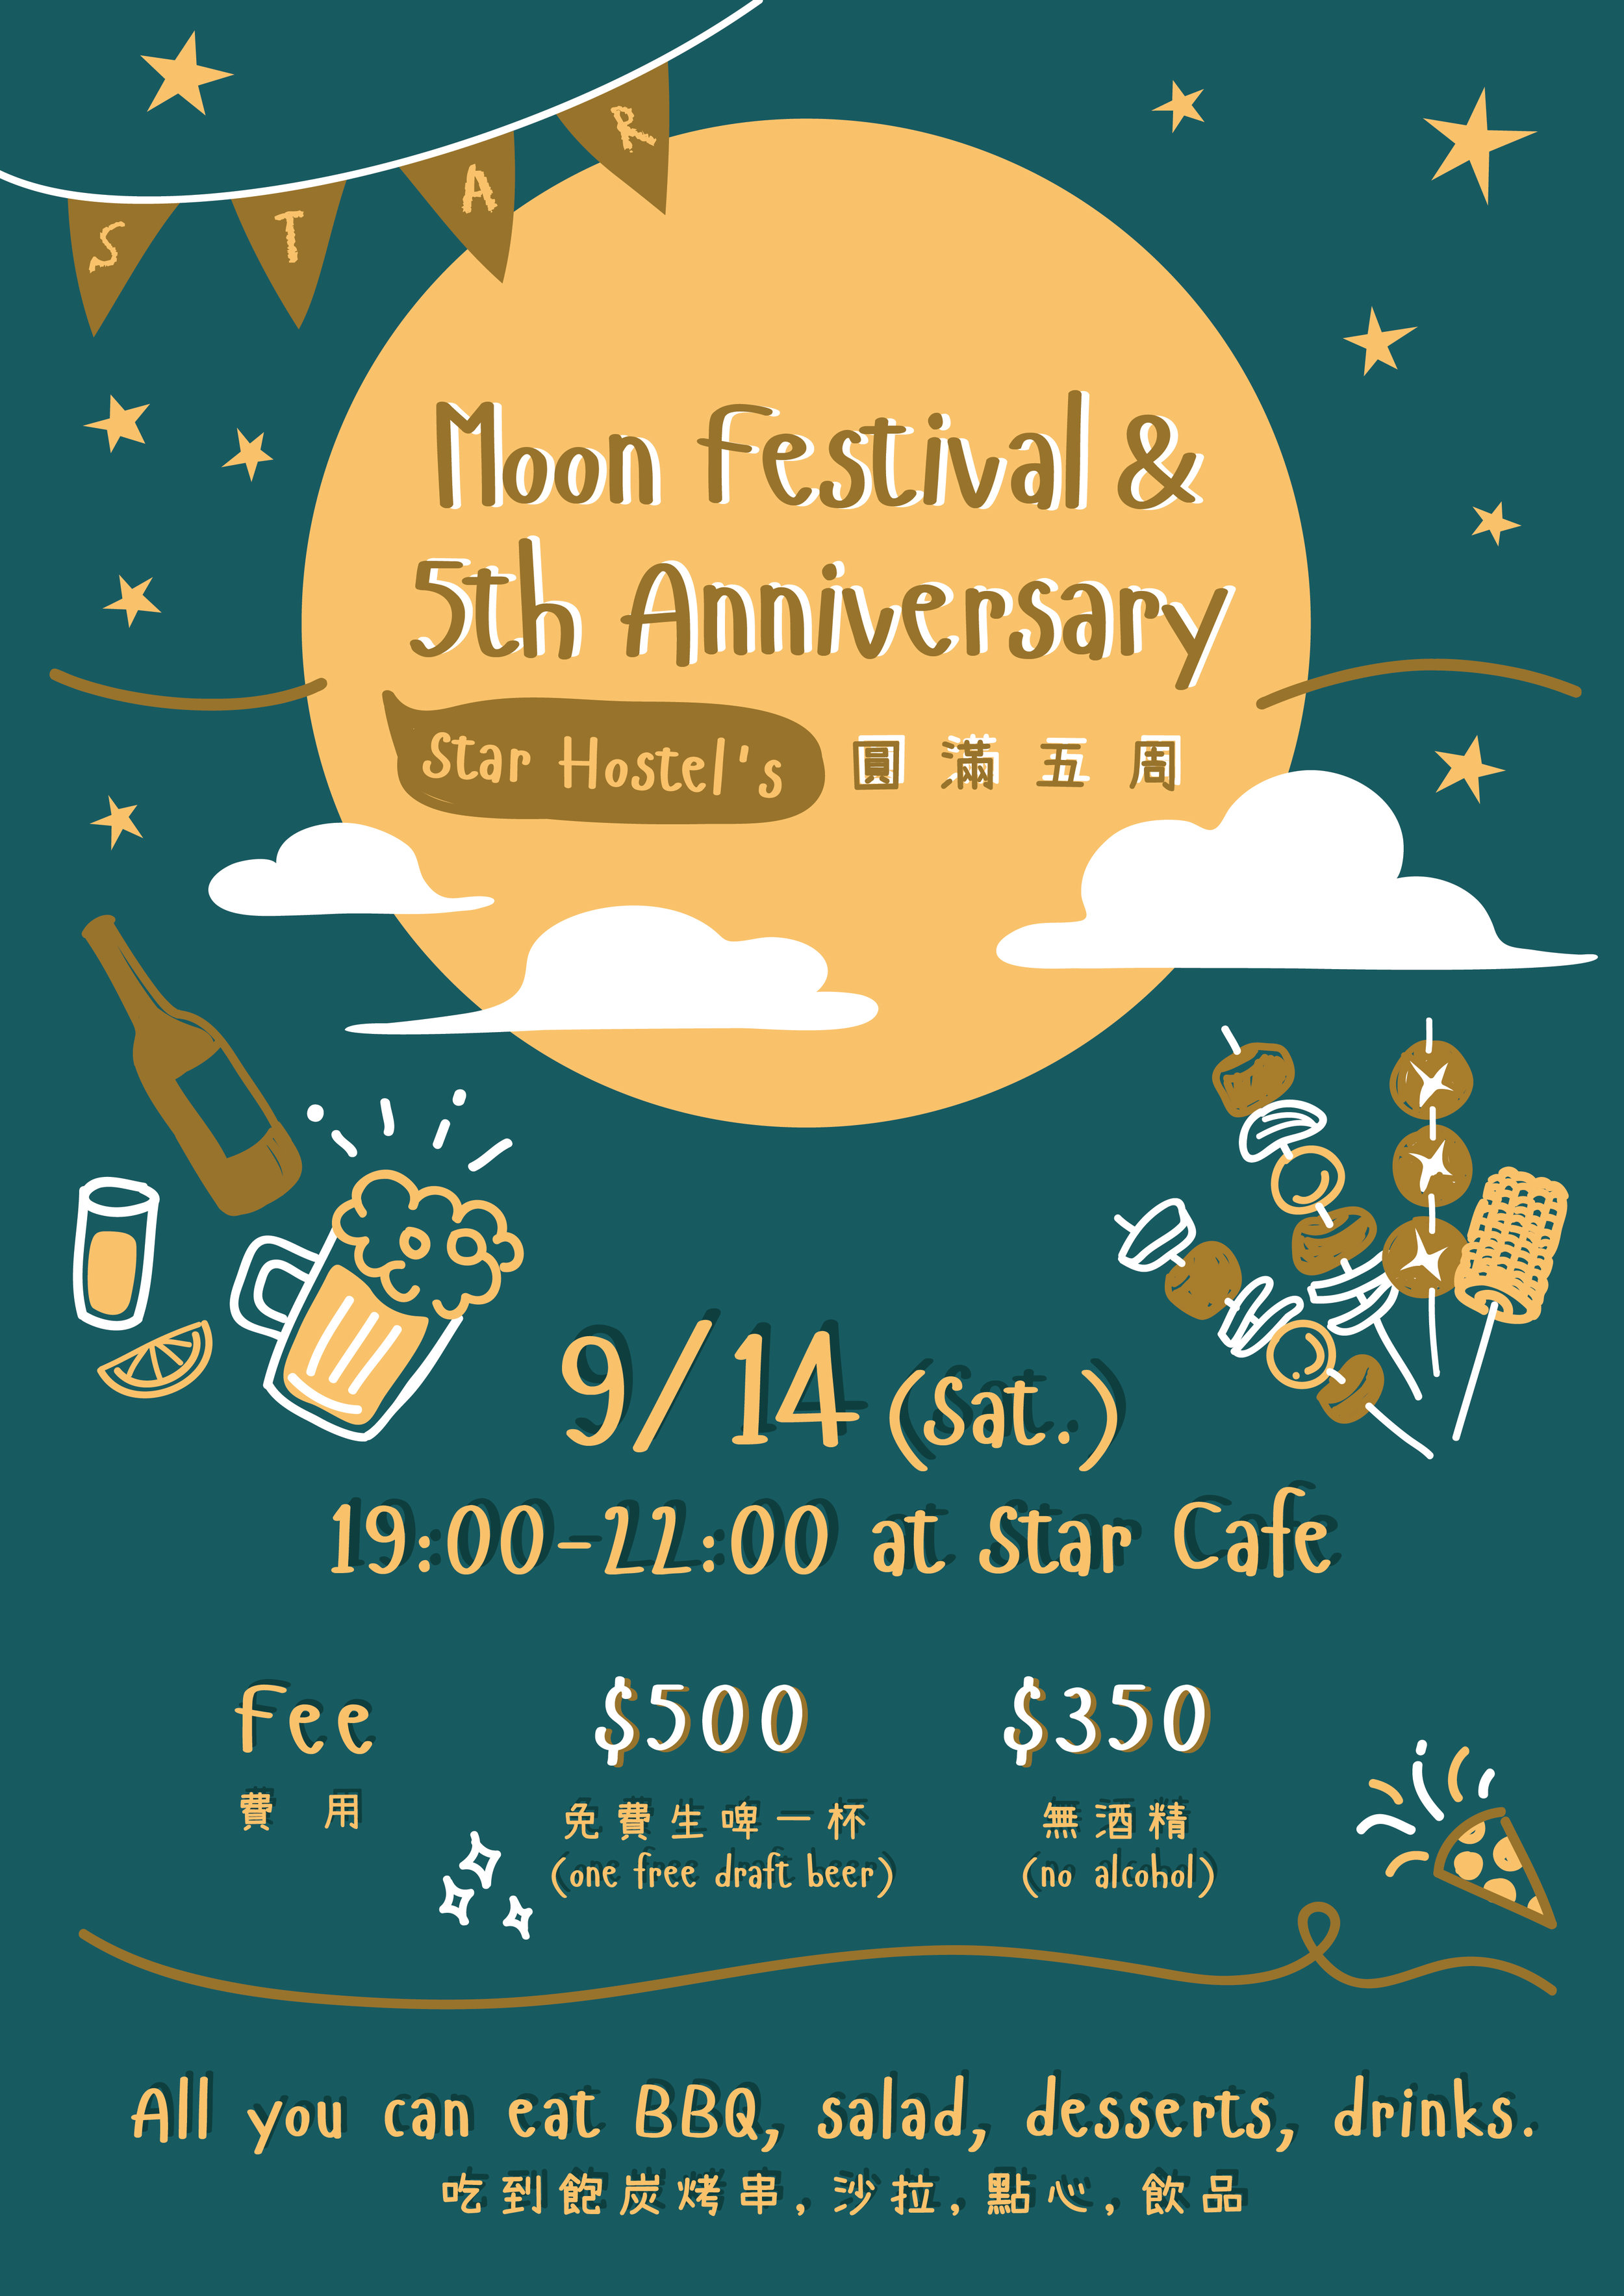 Moon Festival & 5th Anniversary - 2019.09.14Let's celebrate Star Hostel's 5th birthday and Taiwanese Moon Festival together!Enjoy the food and meet people from all of the world!來慶祝Star Hostel五周歲及中秋節吧!一同享用美食及認識來自世界各地的朋友